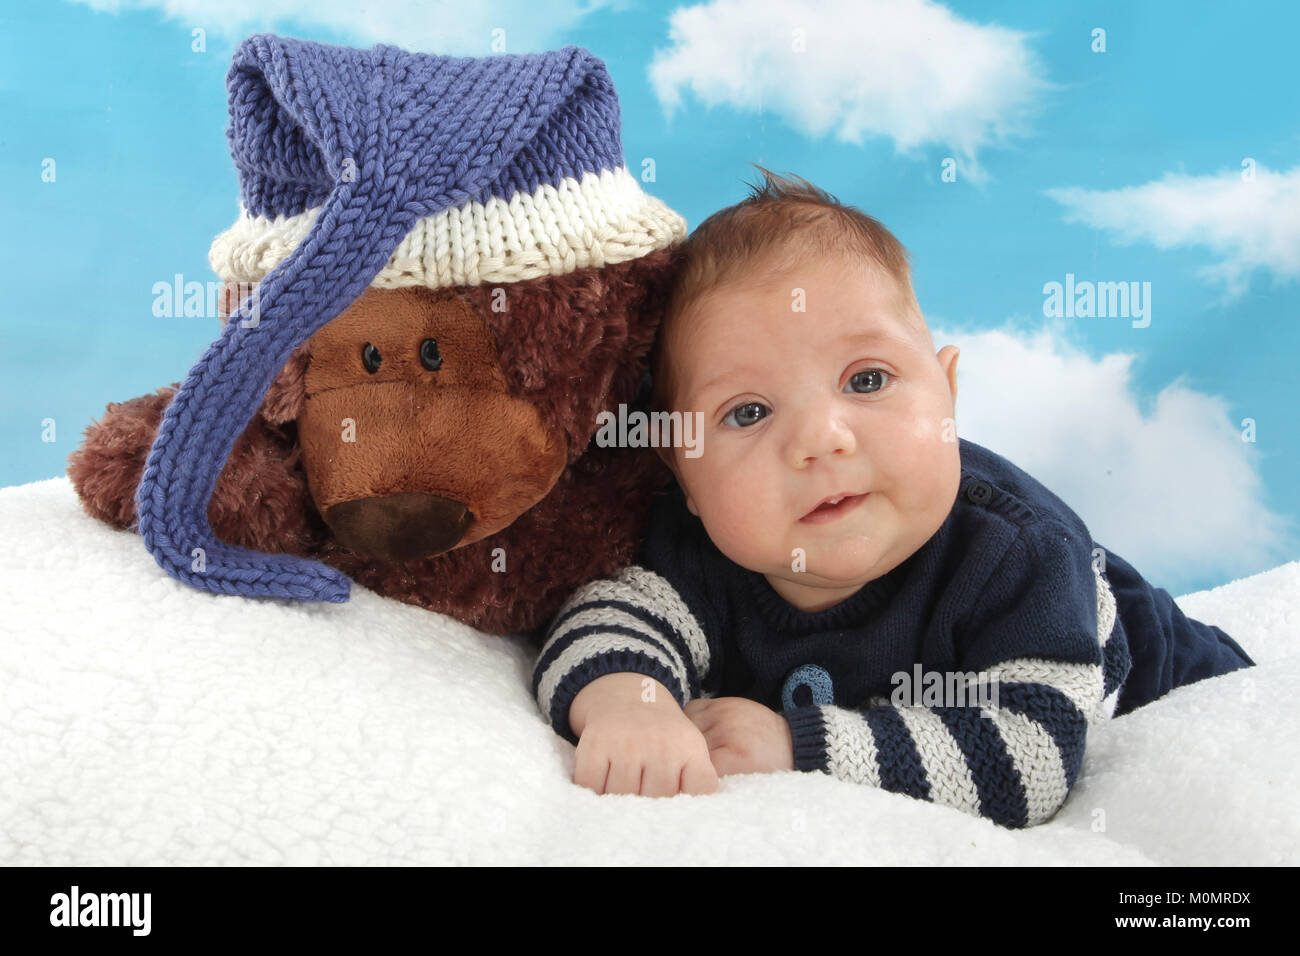 turning difficulty, disabled child, chubby little boy, large infant - Stock Image